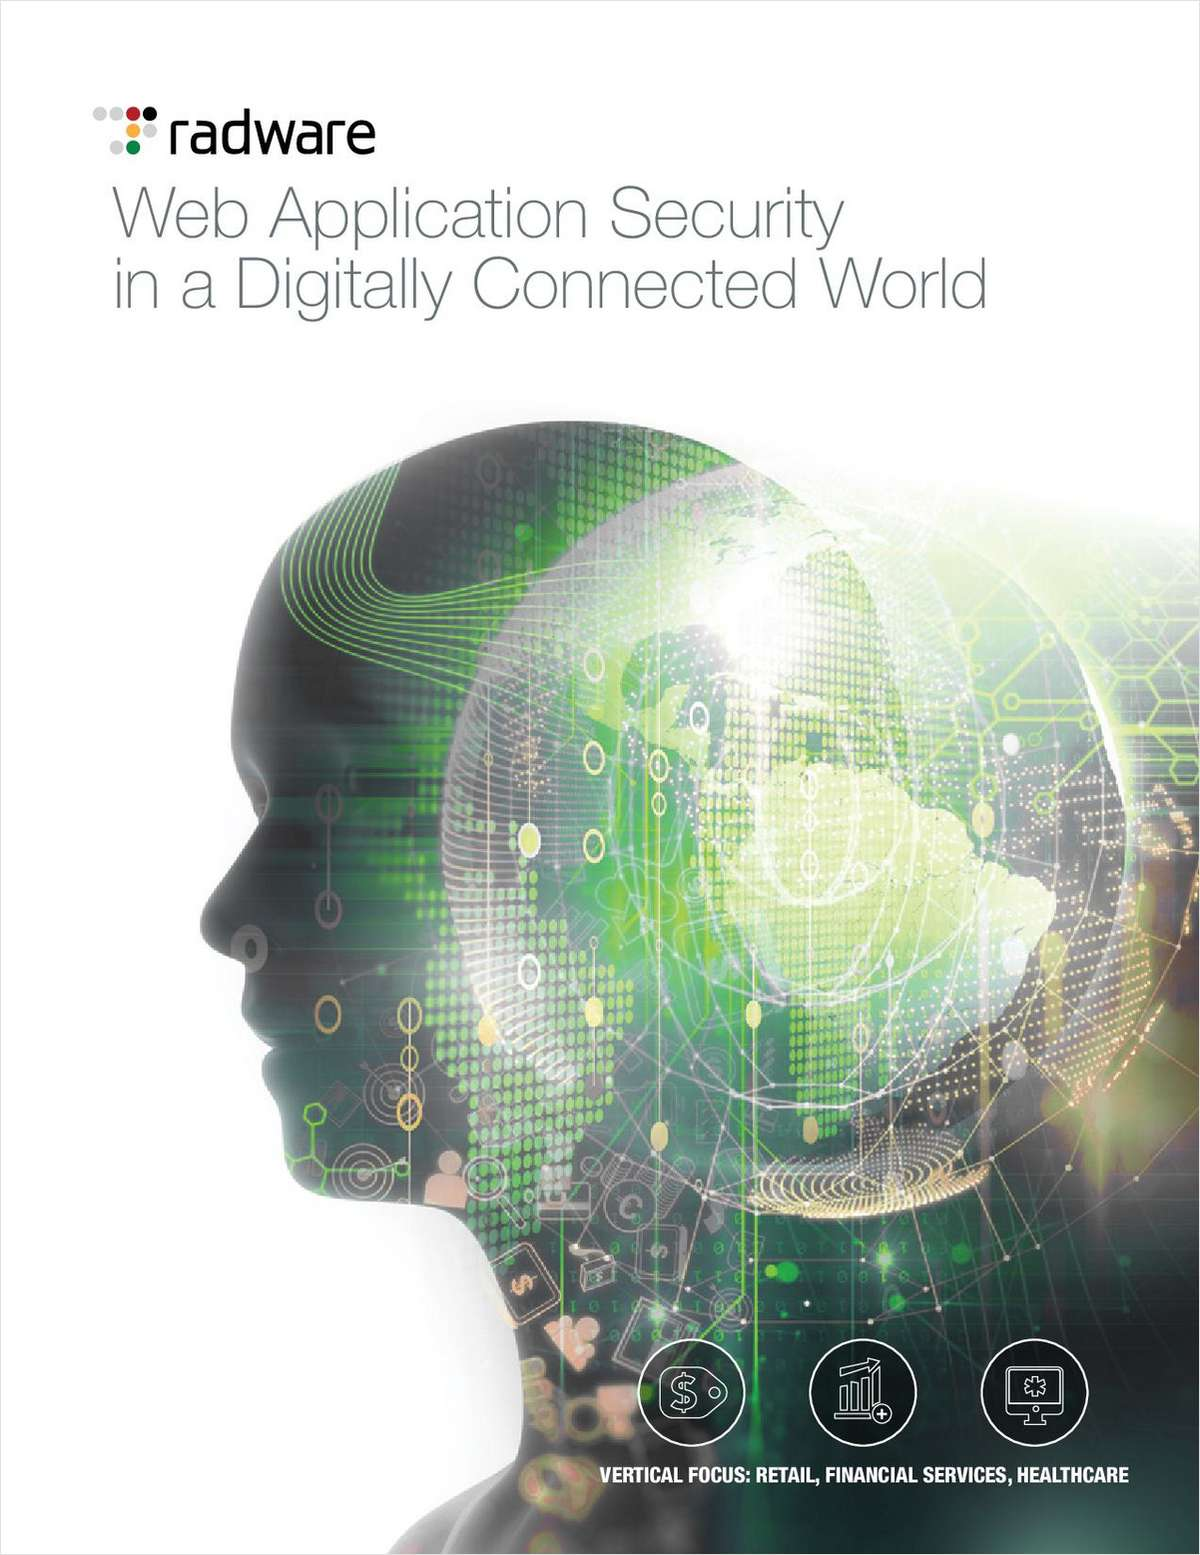 Web Application Security in a Digitally Connected World